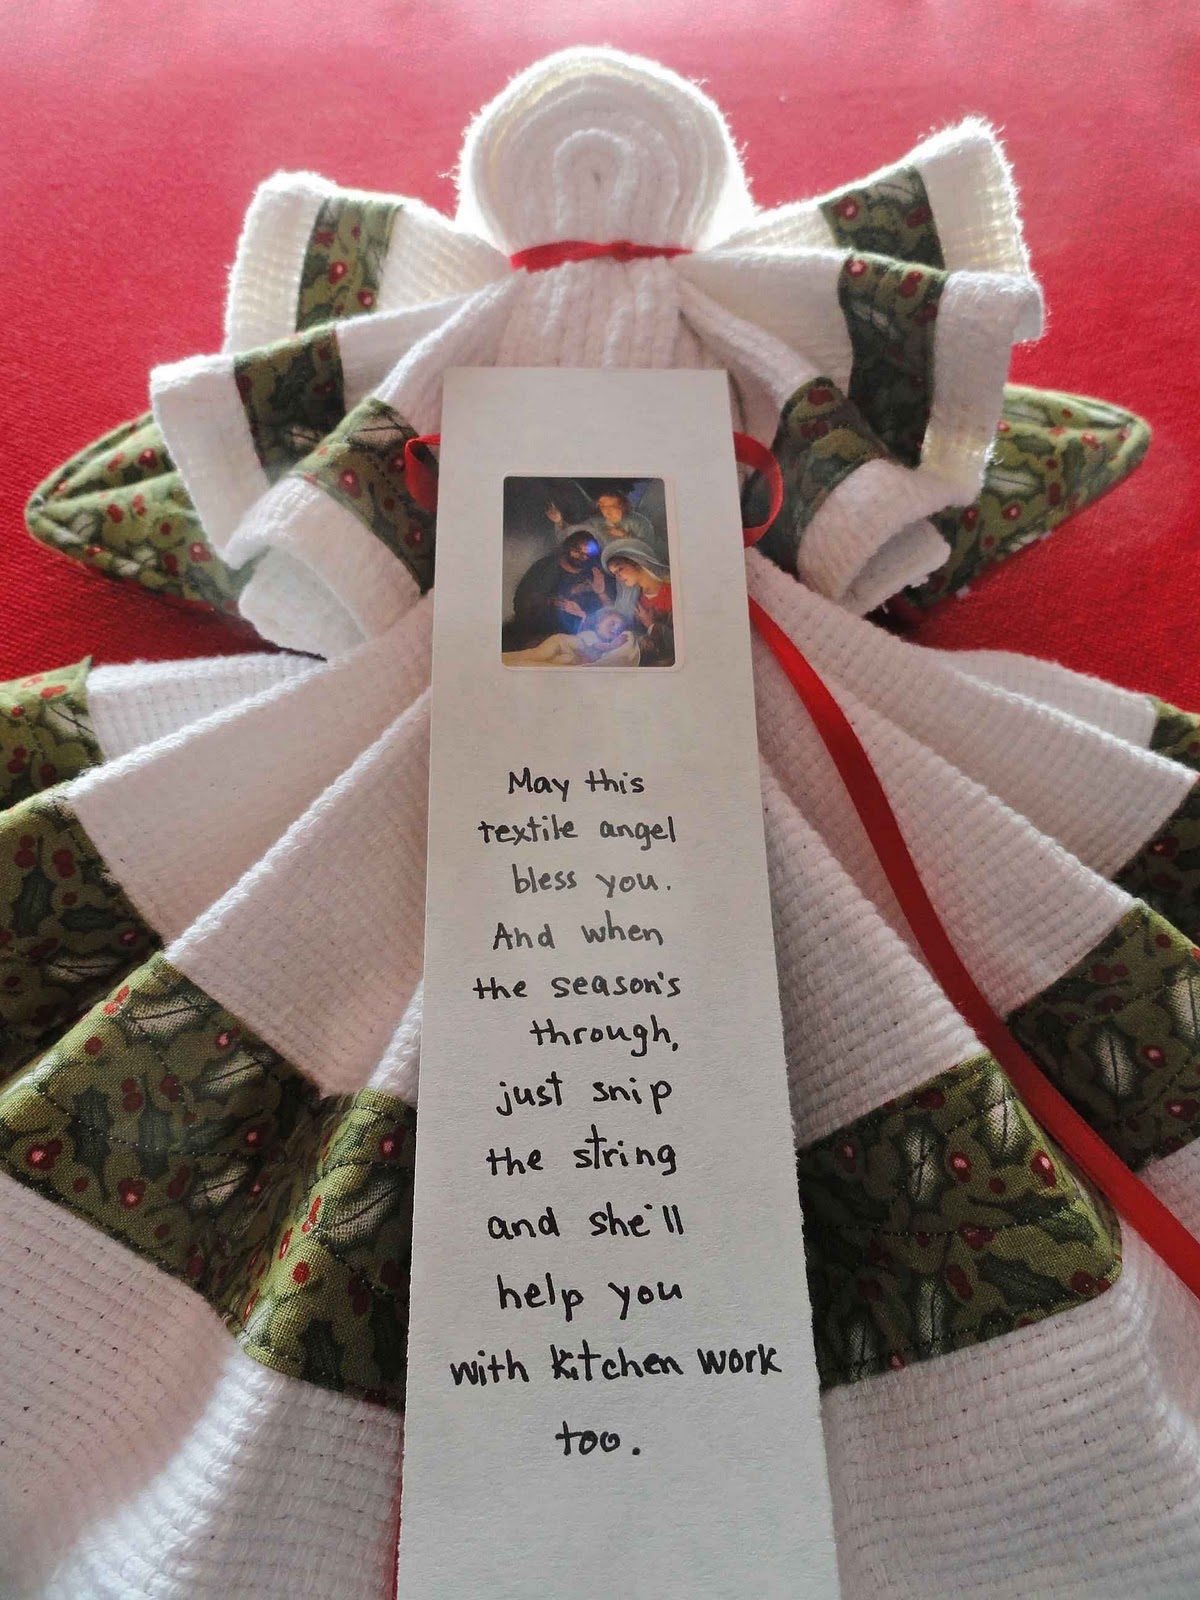 Angel Poem To Go With Dish Towels Just B Cause